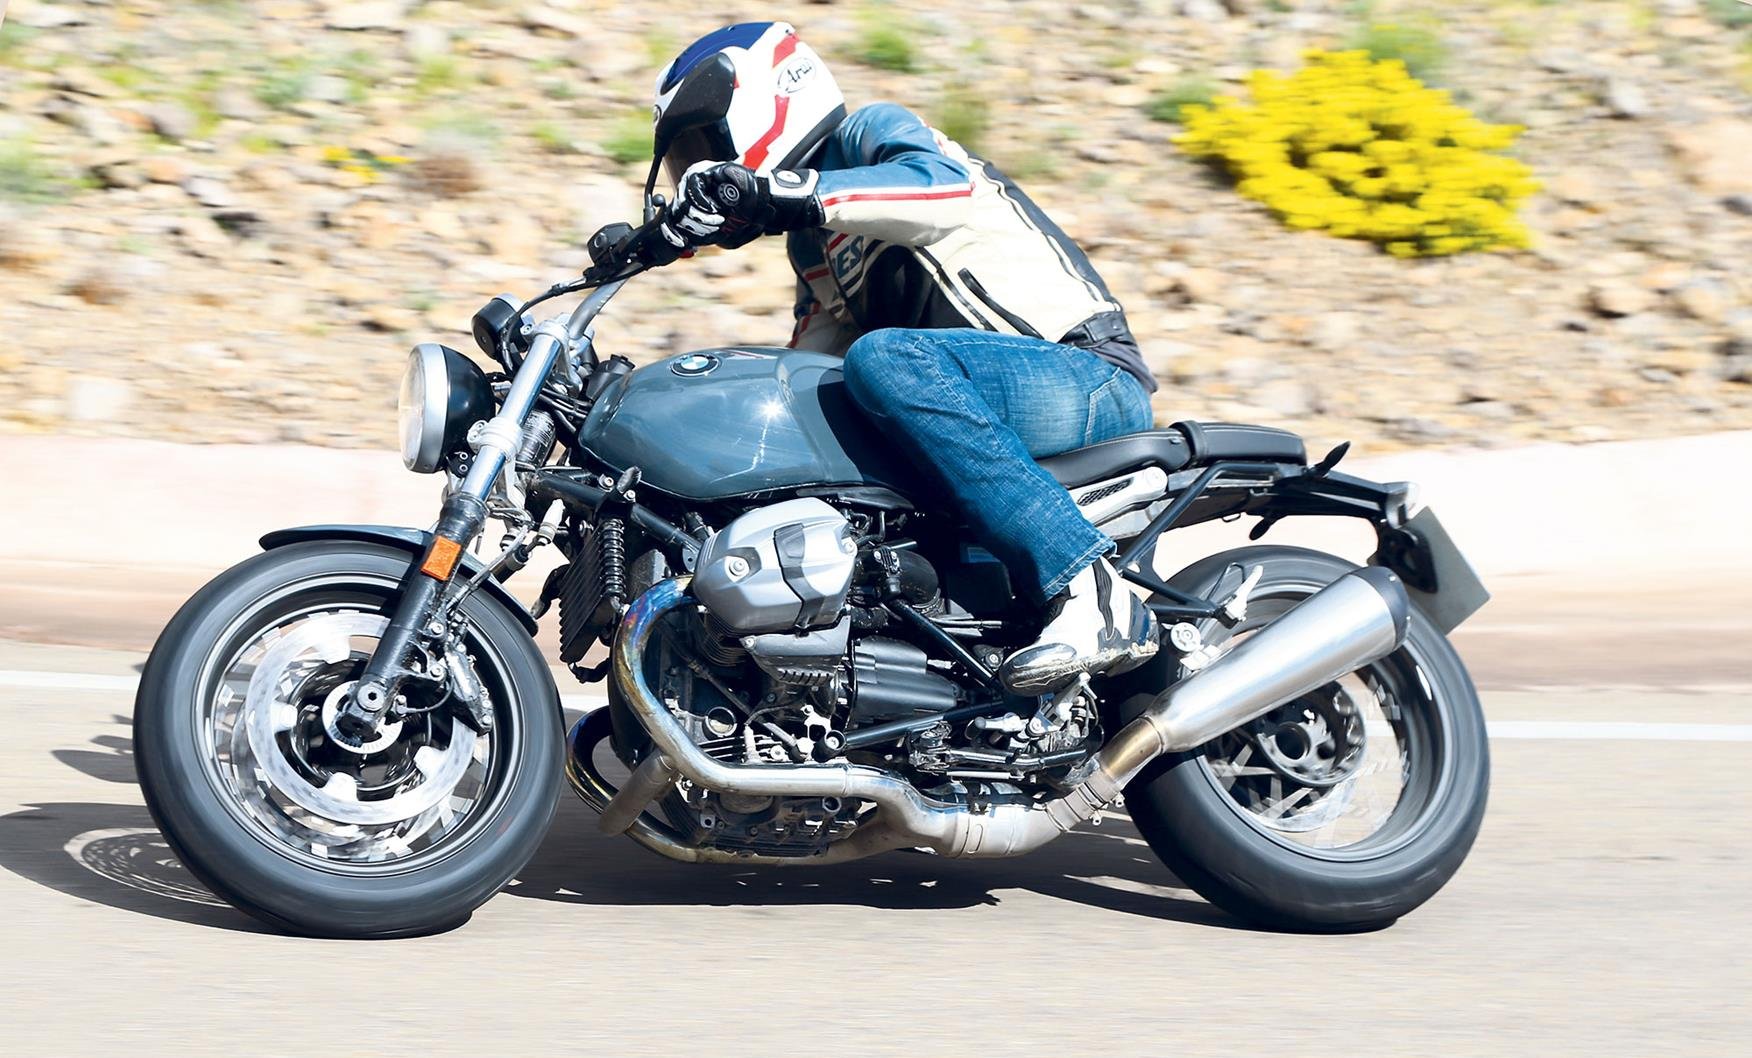 Riding the BMW R nineT Pure